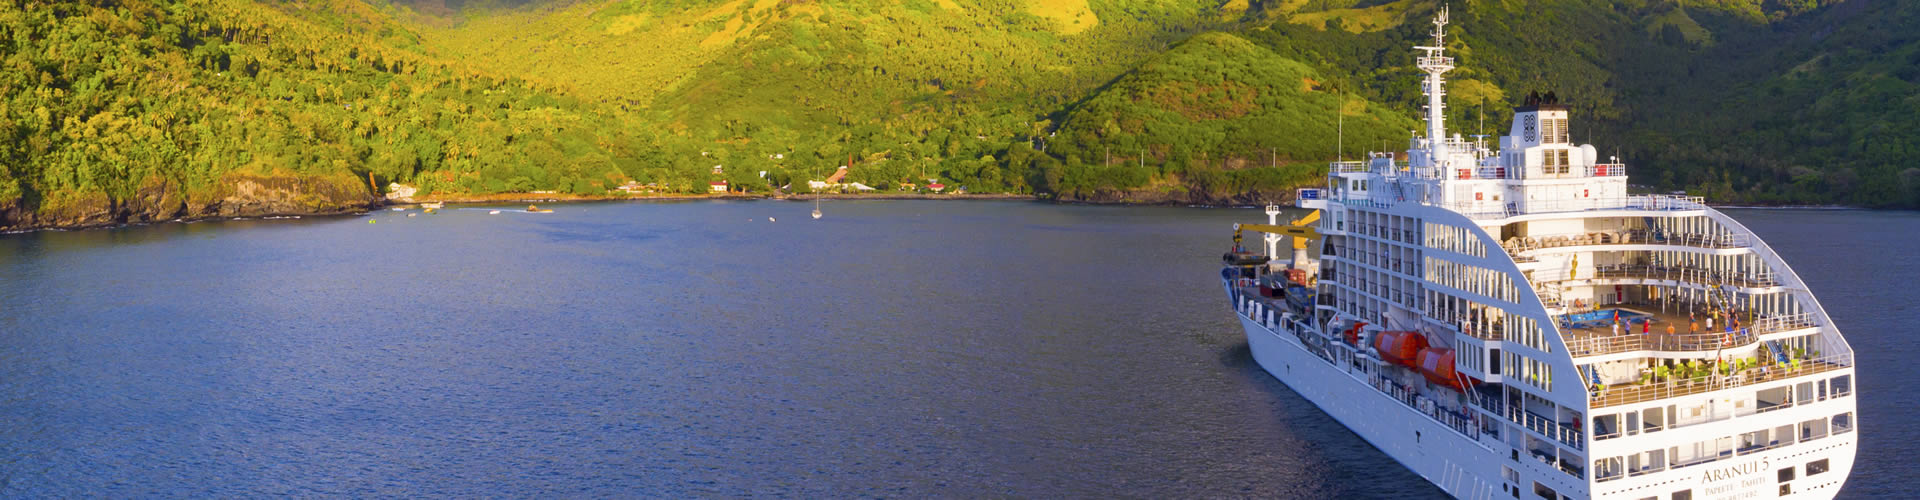 Explore the Marquesas Islands aboard the Aranui | Photo credit: Aranui